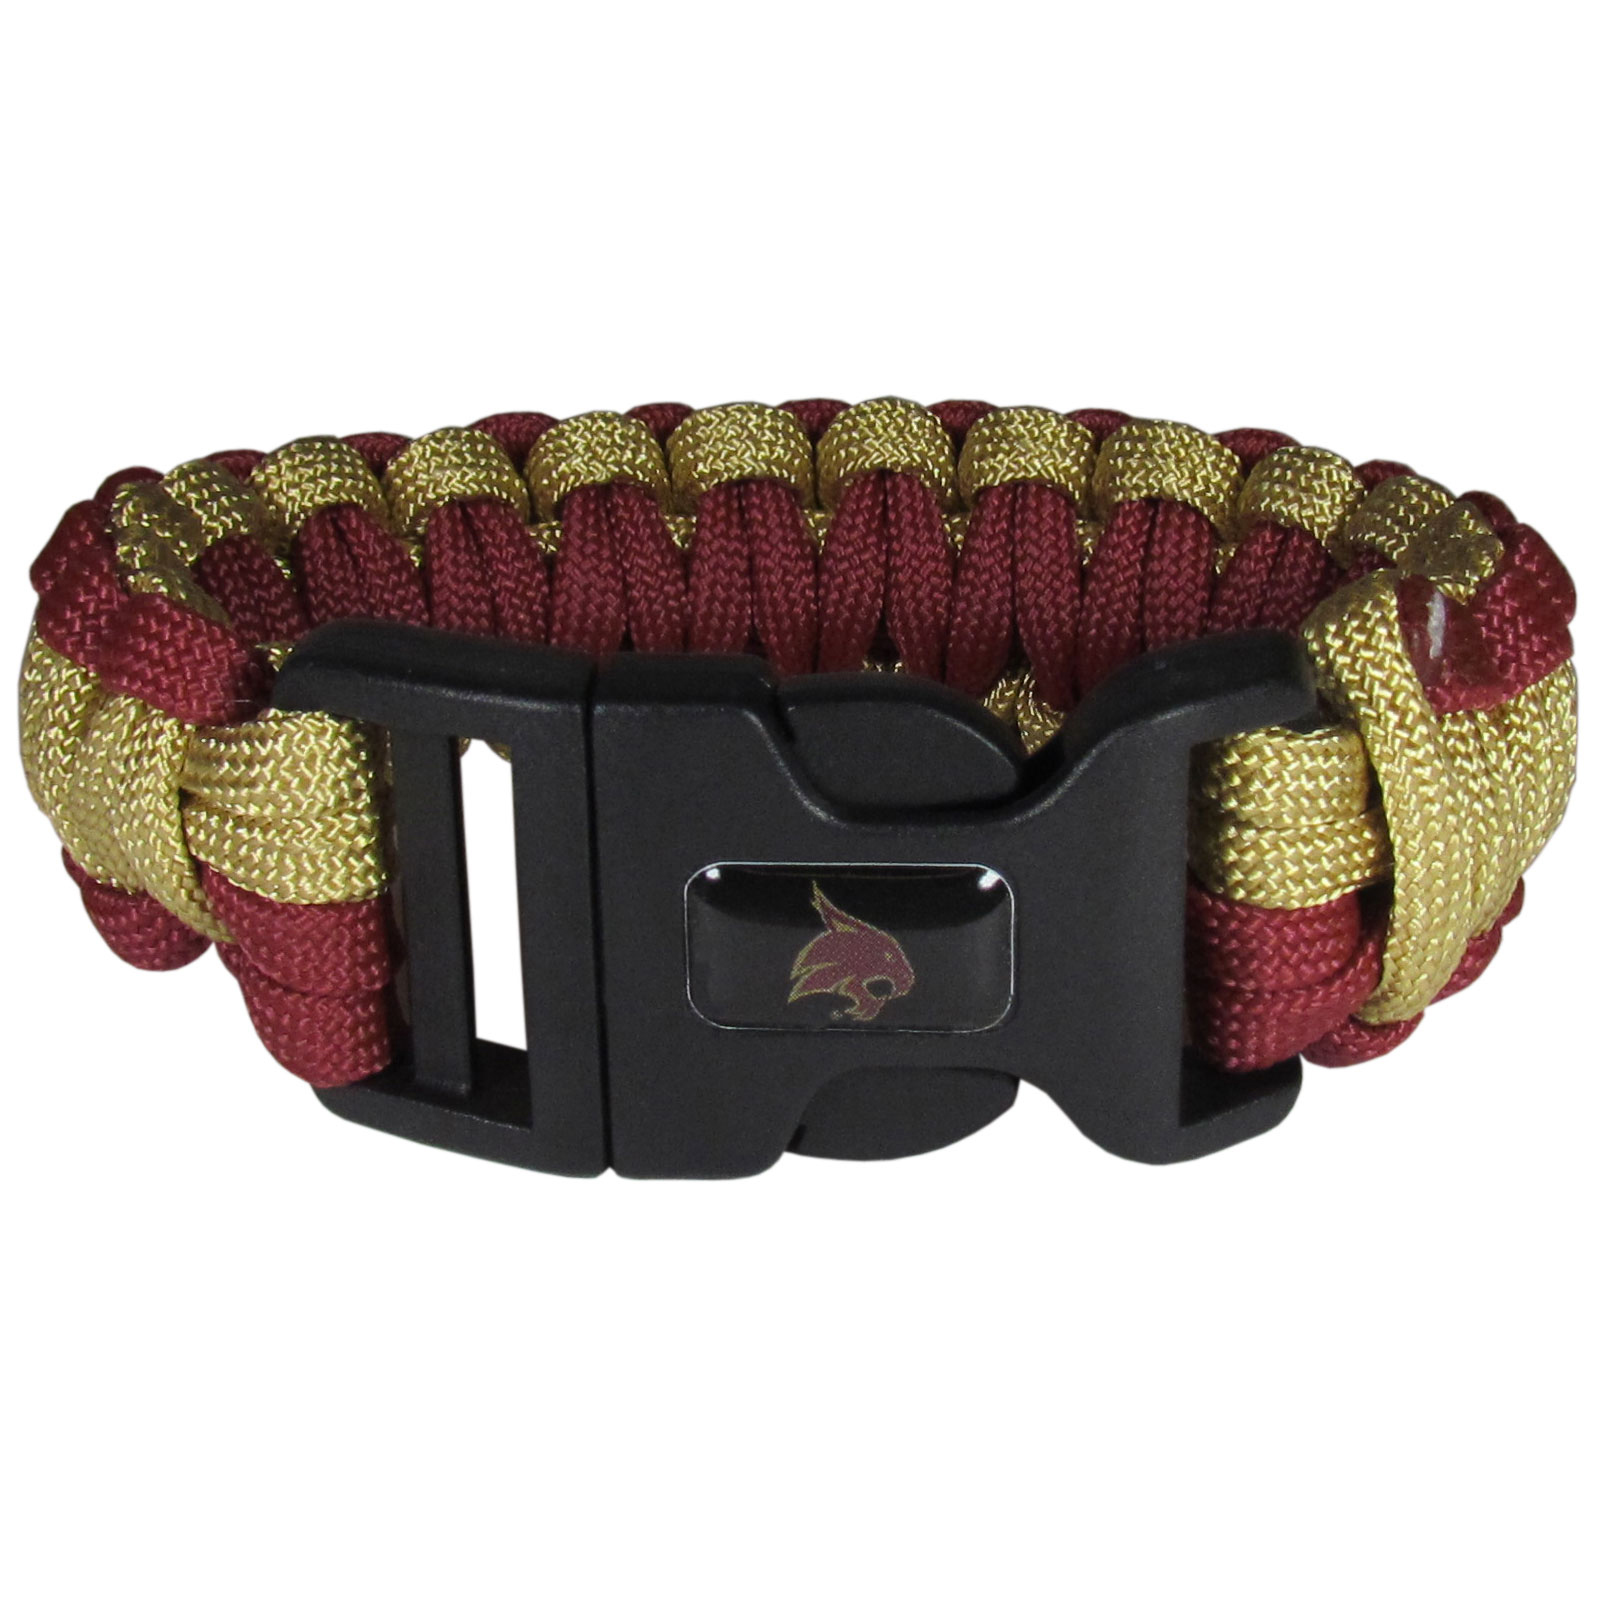 Texas St. Bobcats Survivor Bracelet - Our functional and fashionable Texas St. Bobcats survivor bracelets contain 2 individual 300lb test paracord rated cords that are each 5 feet long. The team colored cords can be pulled apart to be used in any number of emergencies and look great while worn. The bracelet features a team emblem on the clasp.